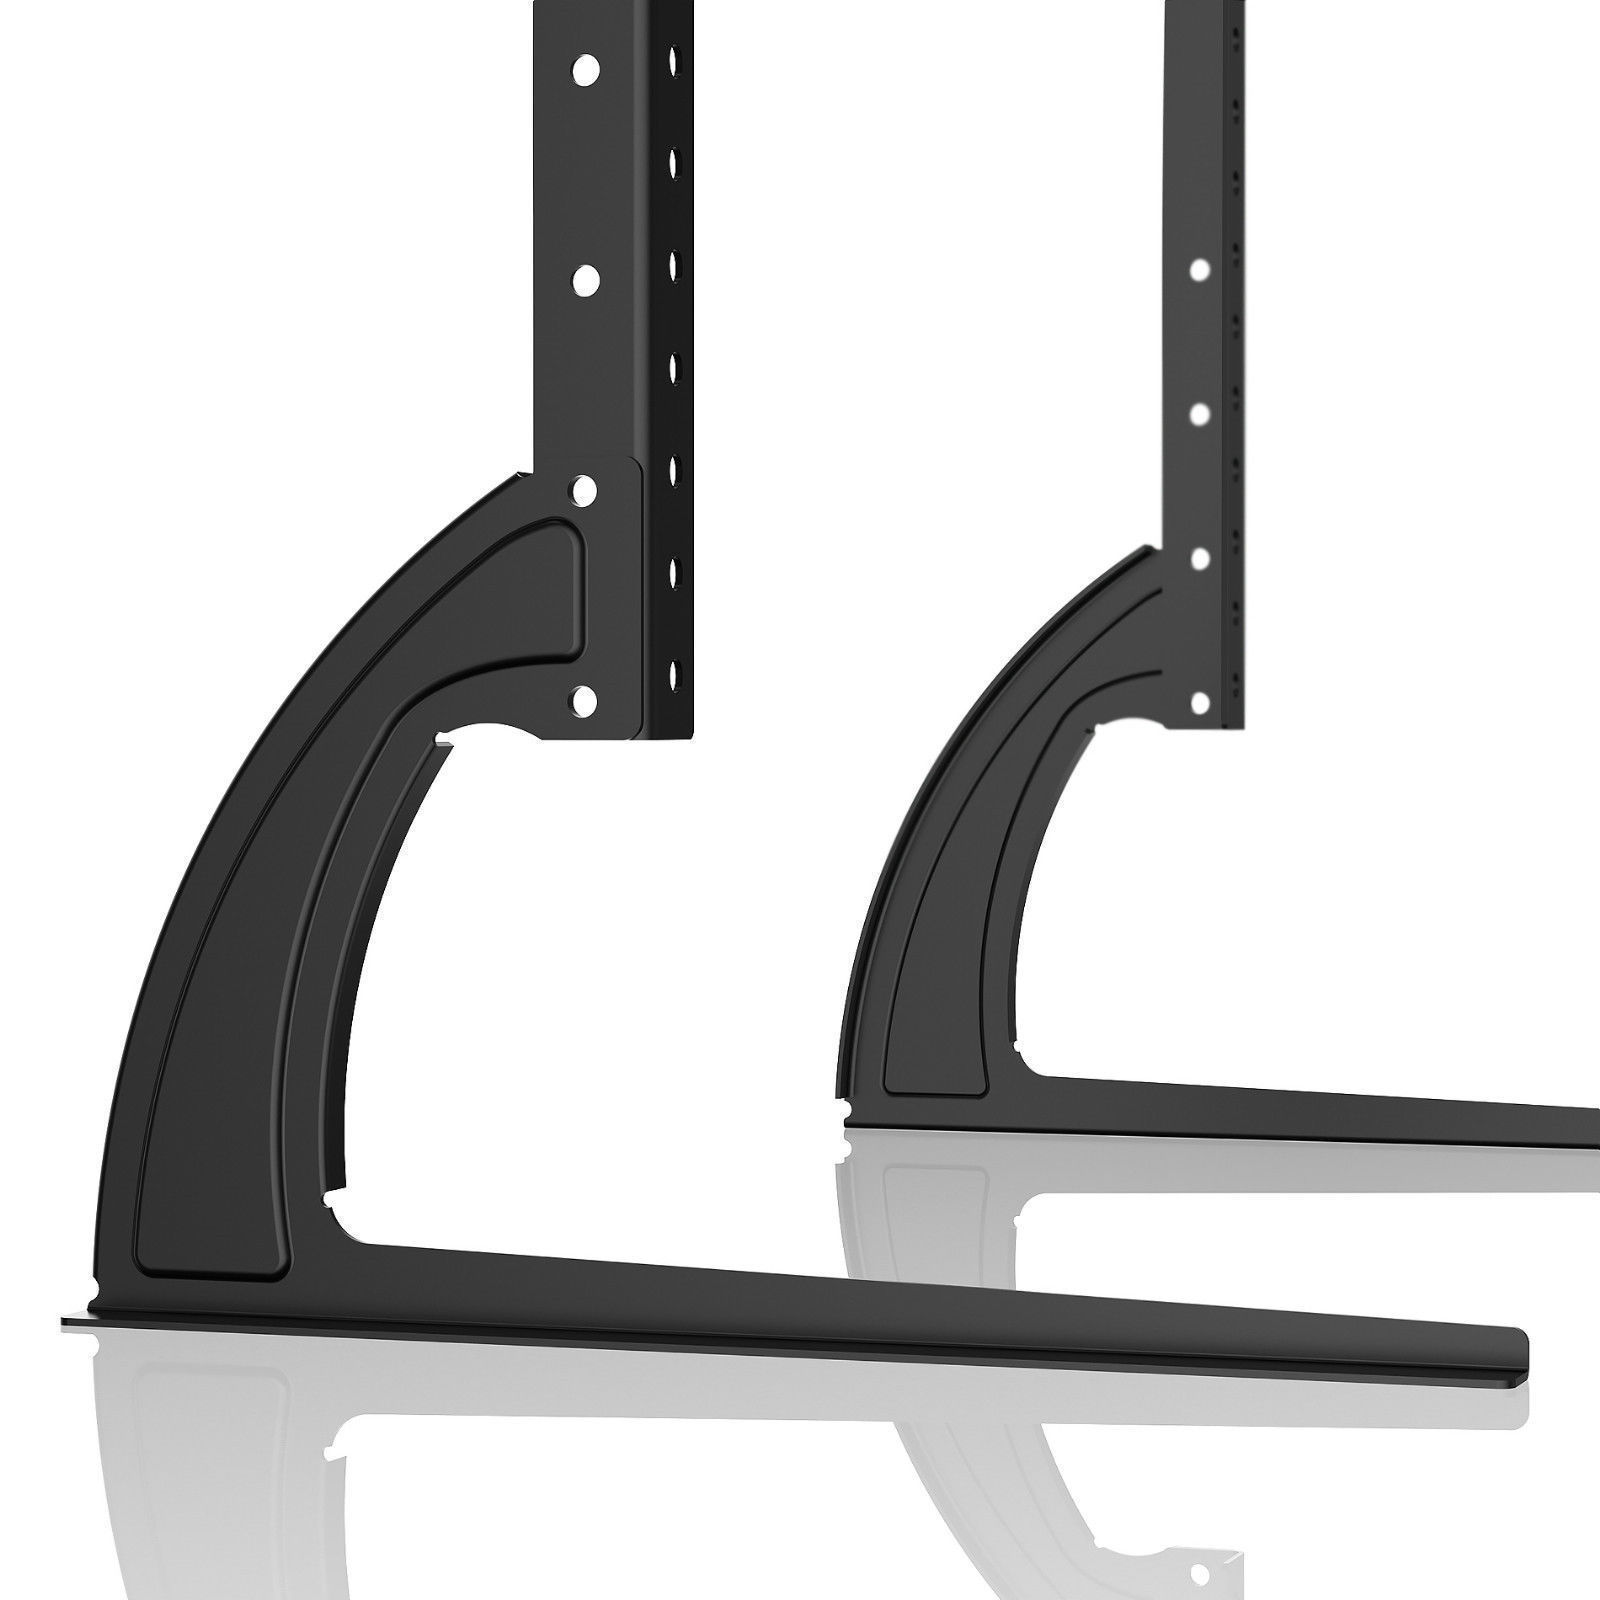 Universal Table Top TV Stand Legs for LG OLED65C6P-U Height Adjustable